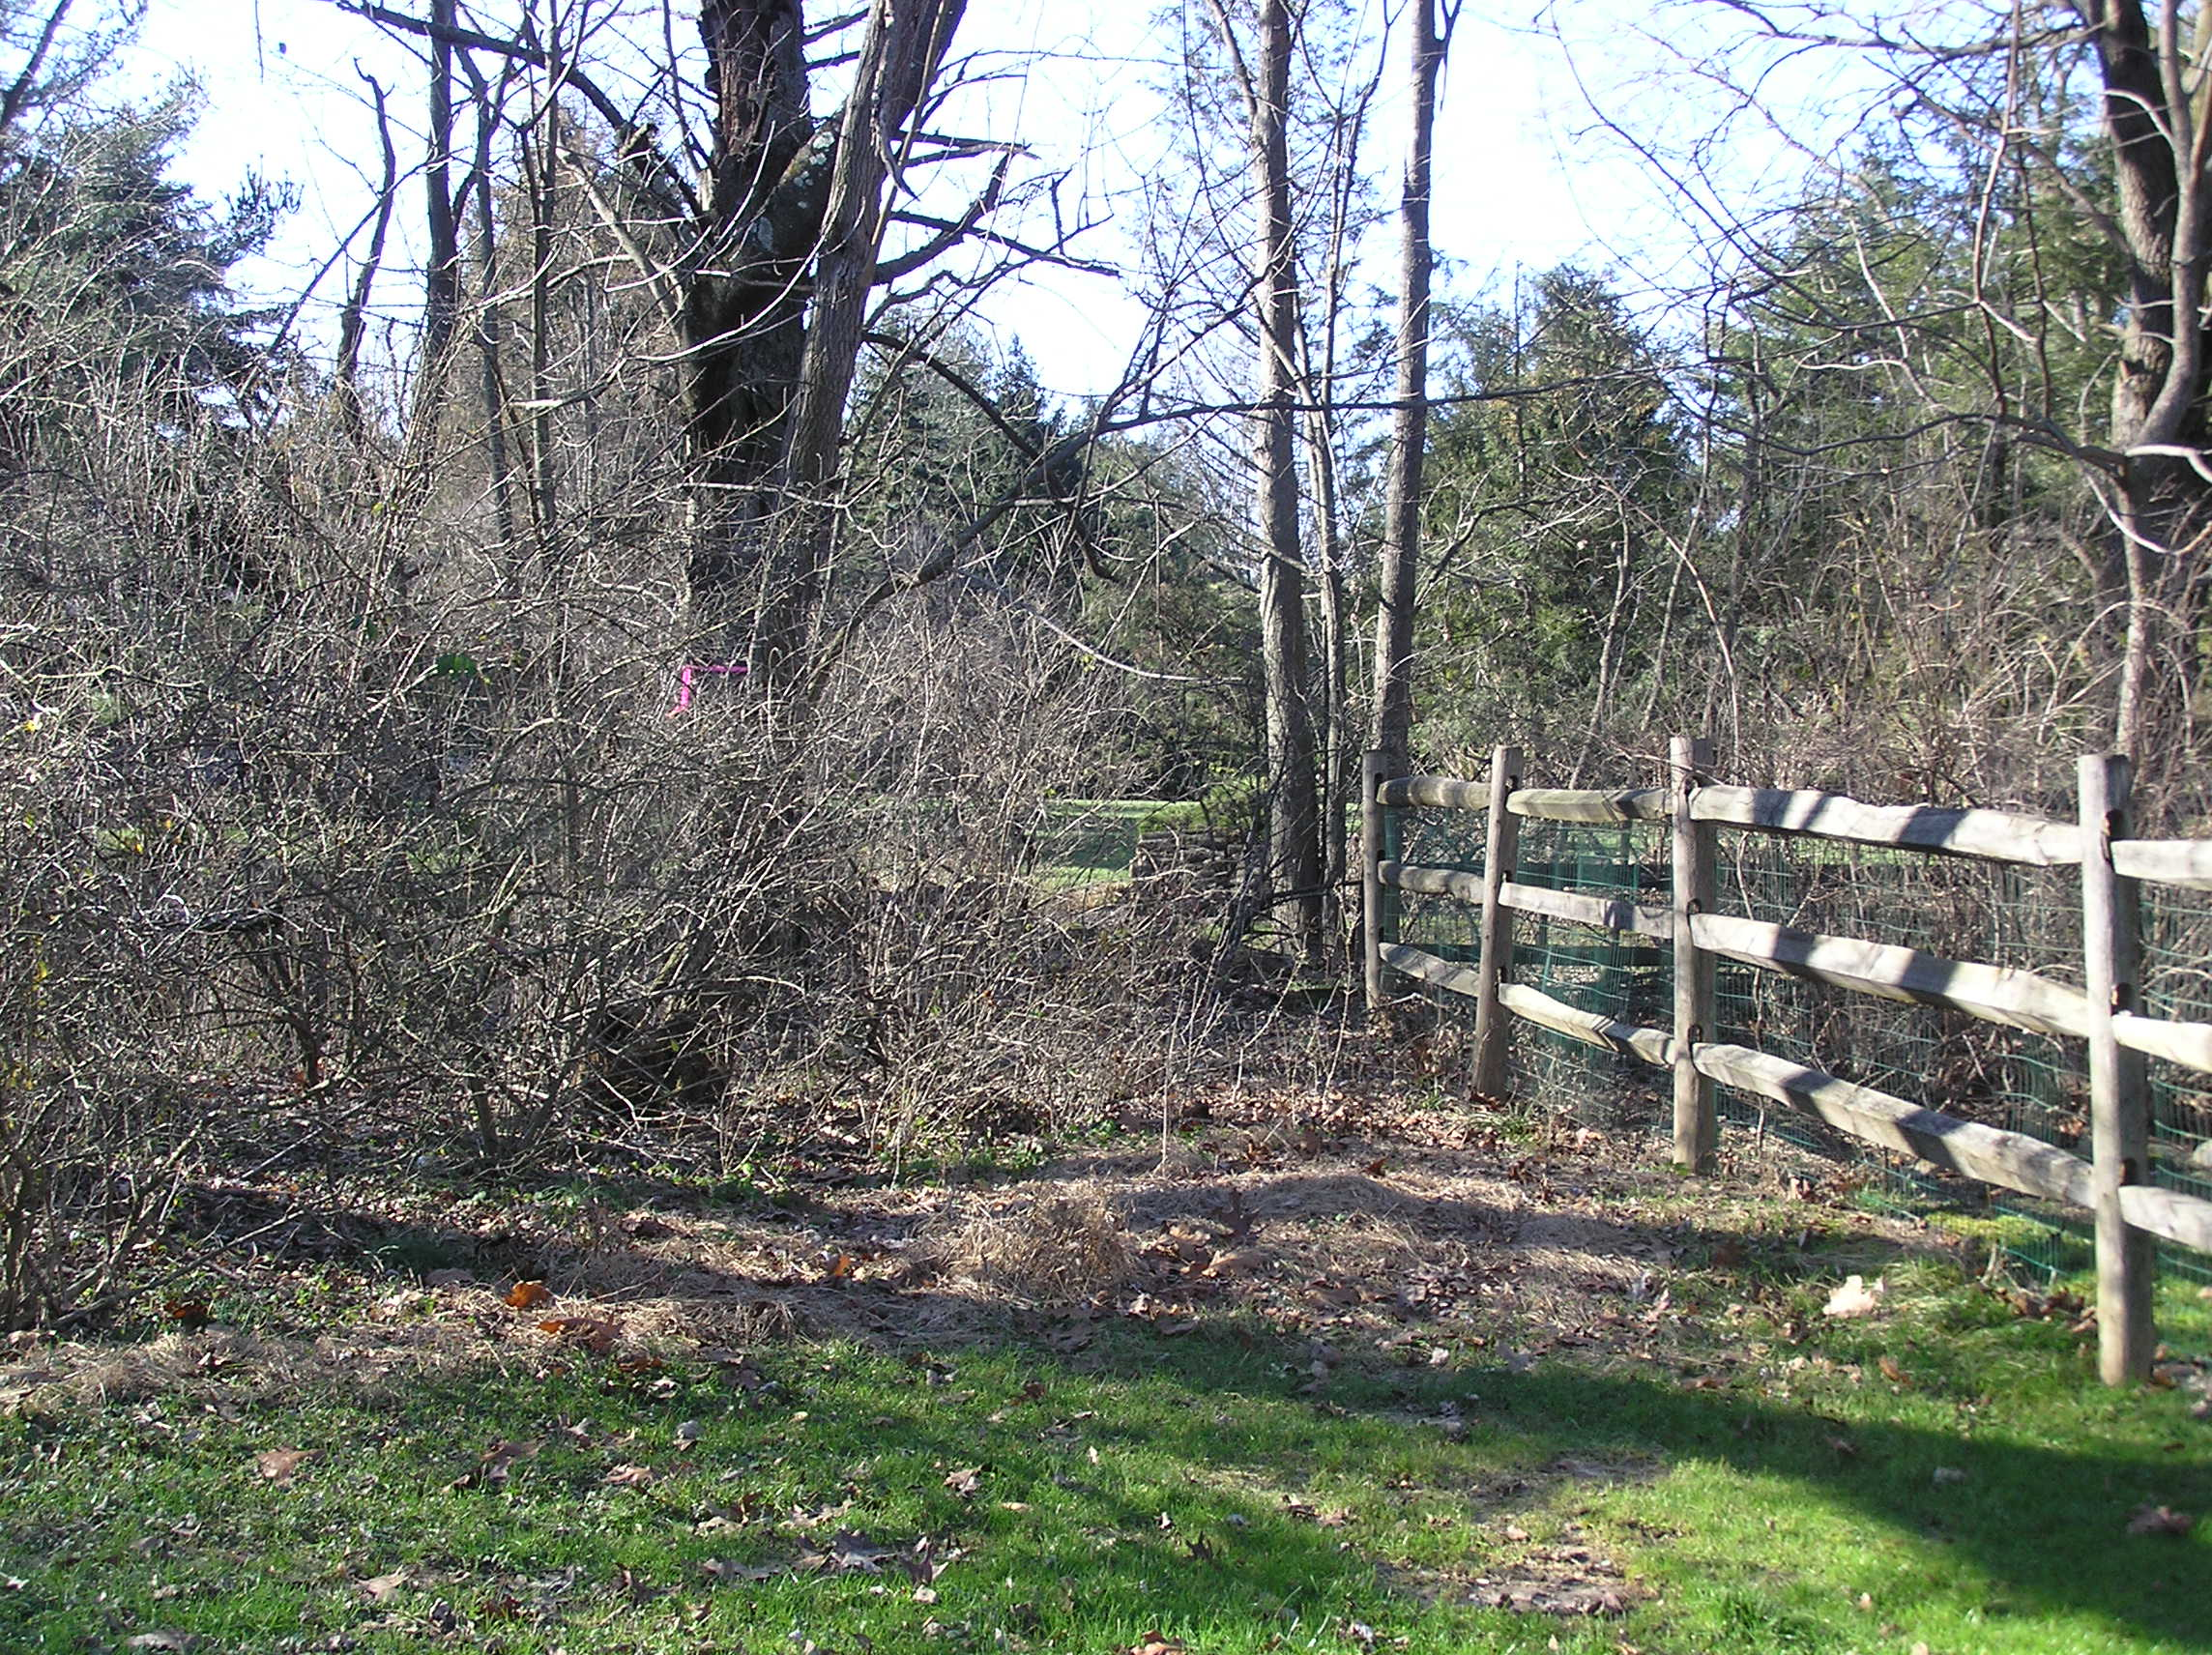 Horticultural Services, proper pruning, Lehigh Valley, PA., Allentown, PA., Bethlehem, PA.  Spring cleanup